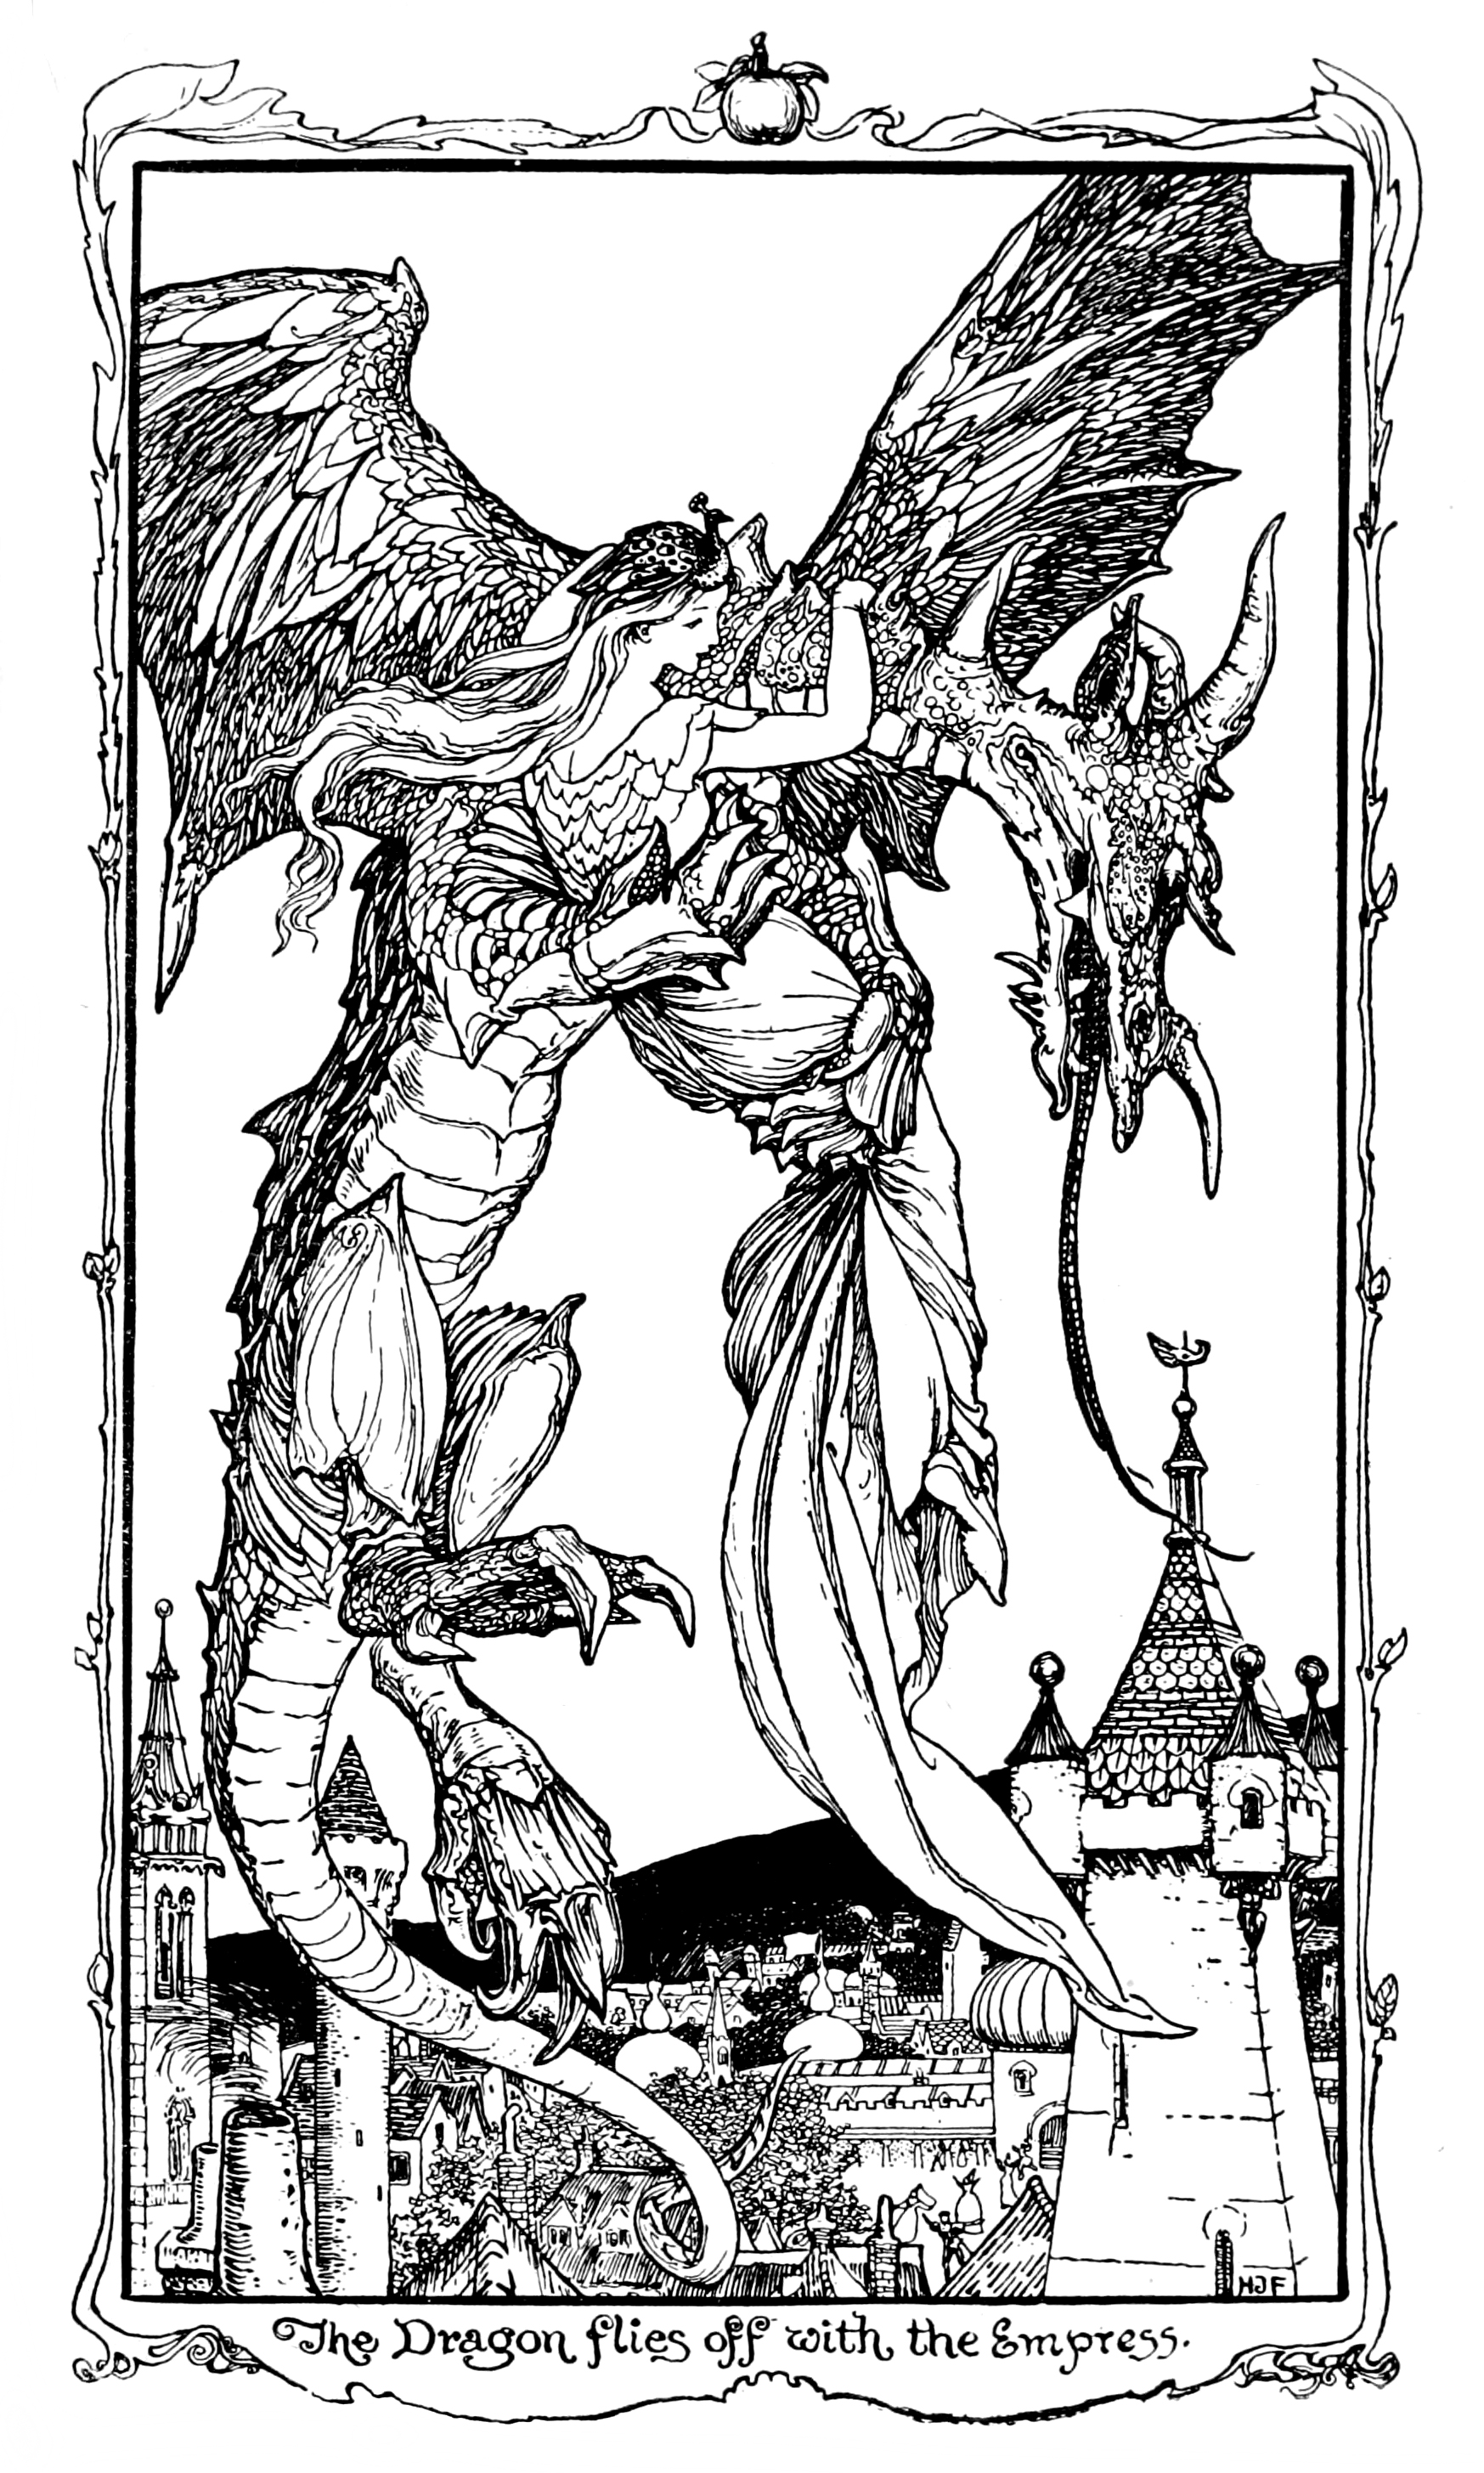 Henry Justice Ford - The violet fairy book, edited by Andrew Lang, 1906 (illustration 4)